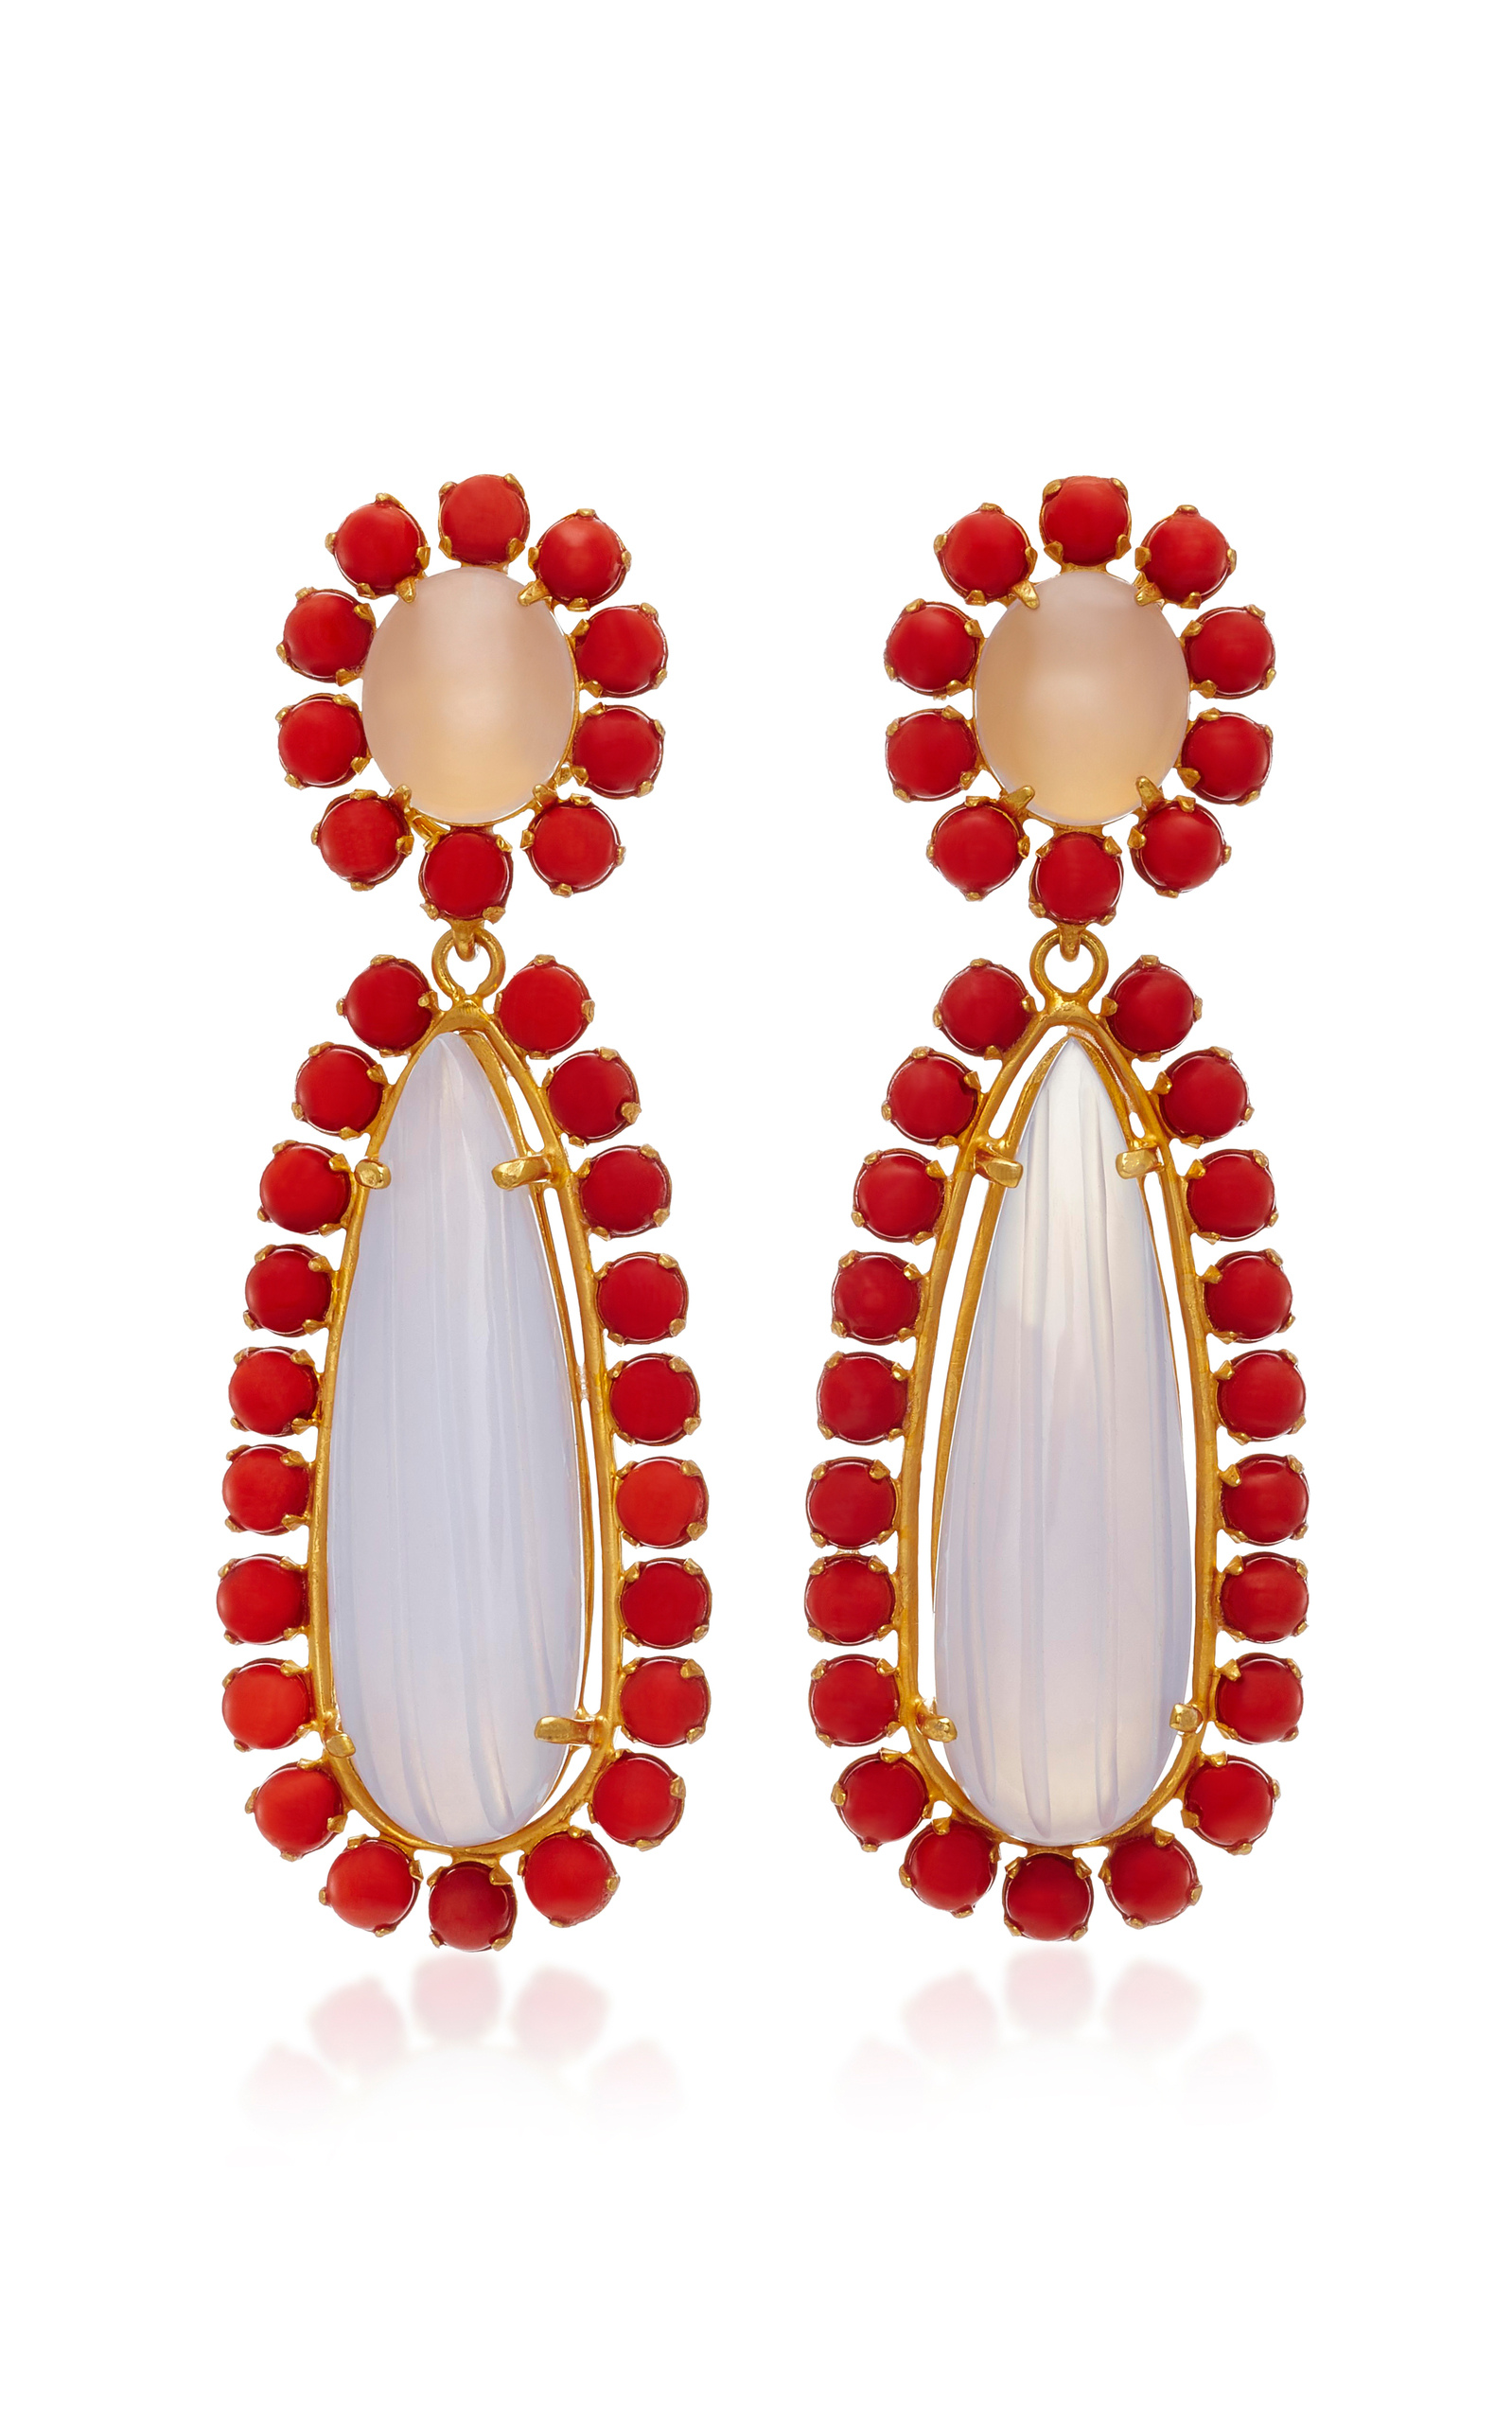 BOUNKIT 14K GOLD-PLATED CHALCEDONY AND RED CORAL DROP EARRINGS